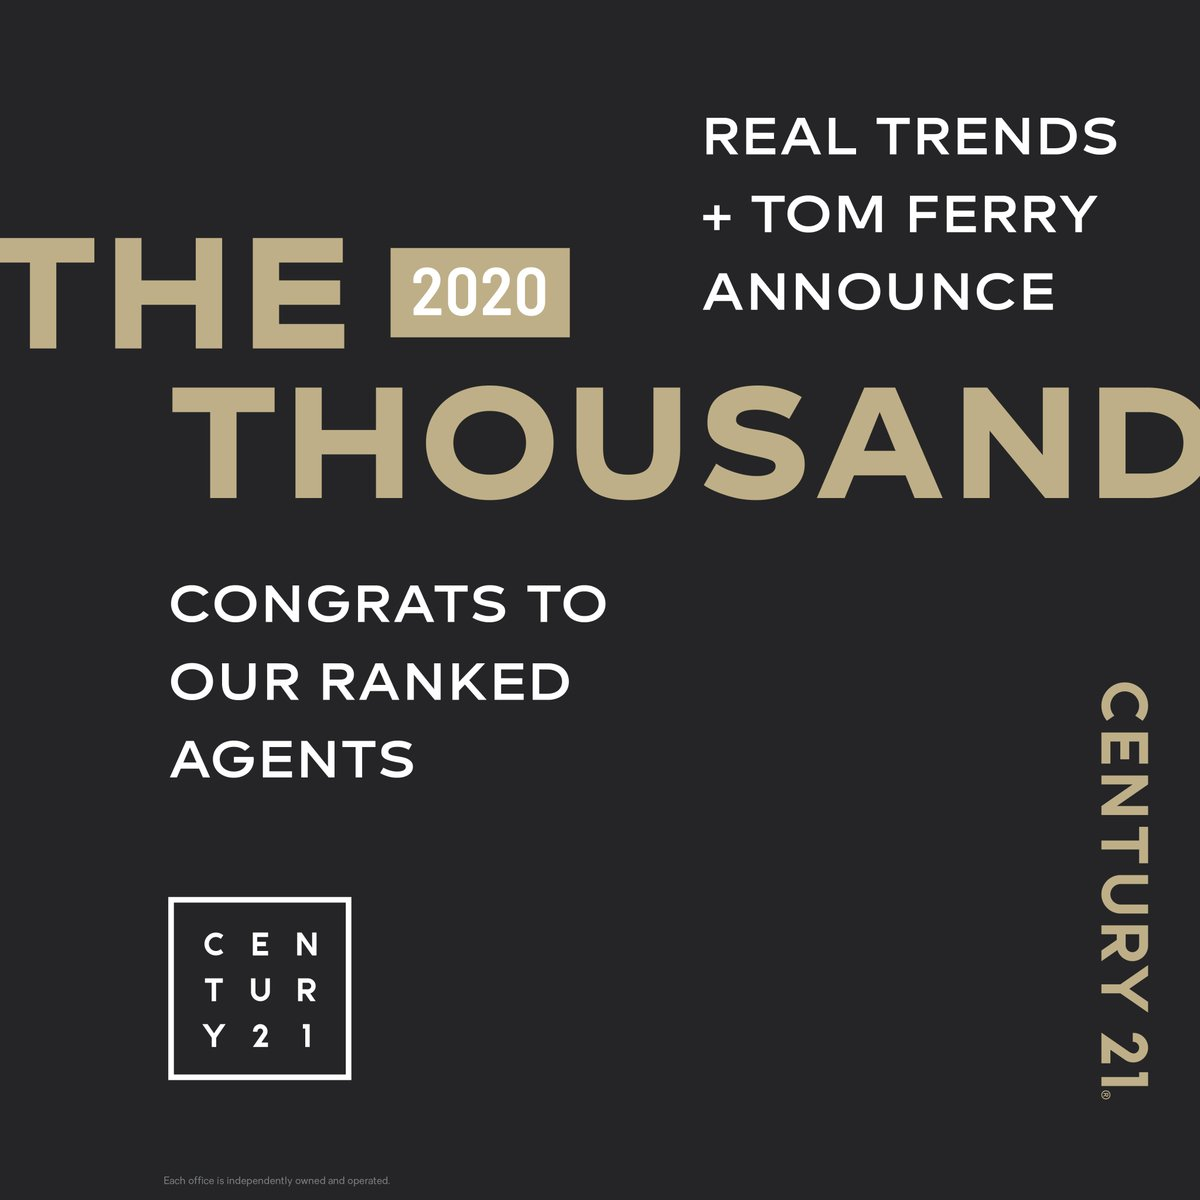 Congrats to the 55 C21 Affiliates named to 2020 The Thousand! #C21Relentless | https://t.co/LVxSnteYmA https://t.co/qrszD0Ssy4